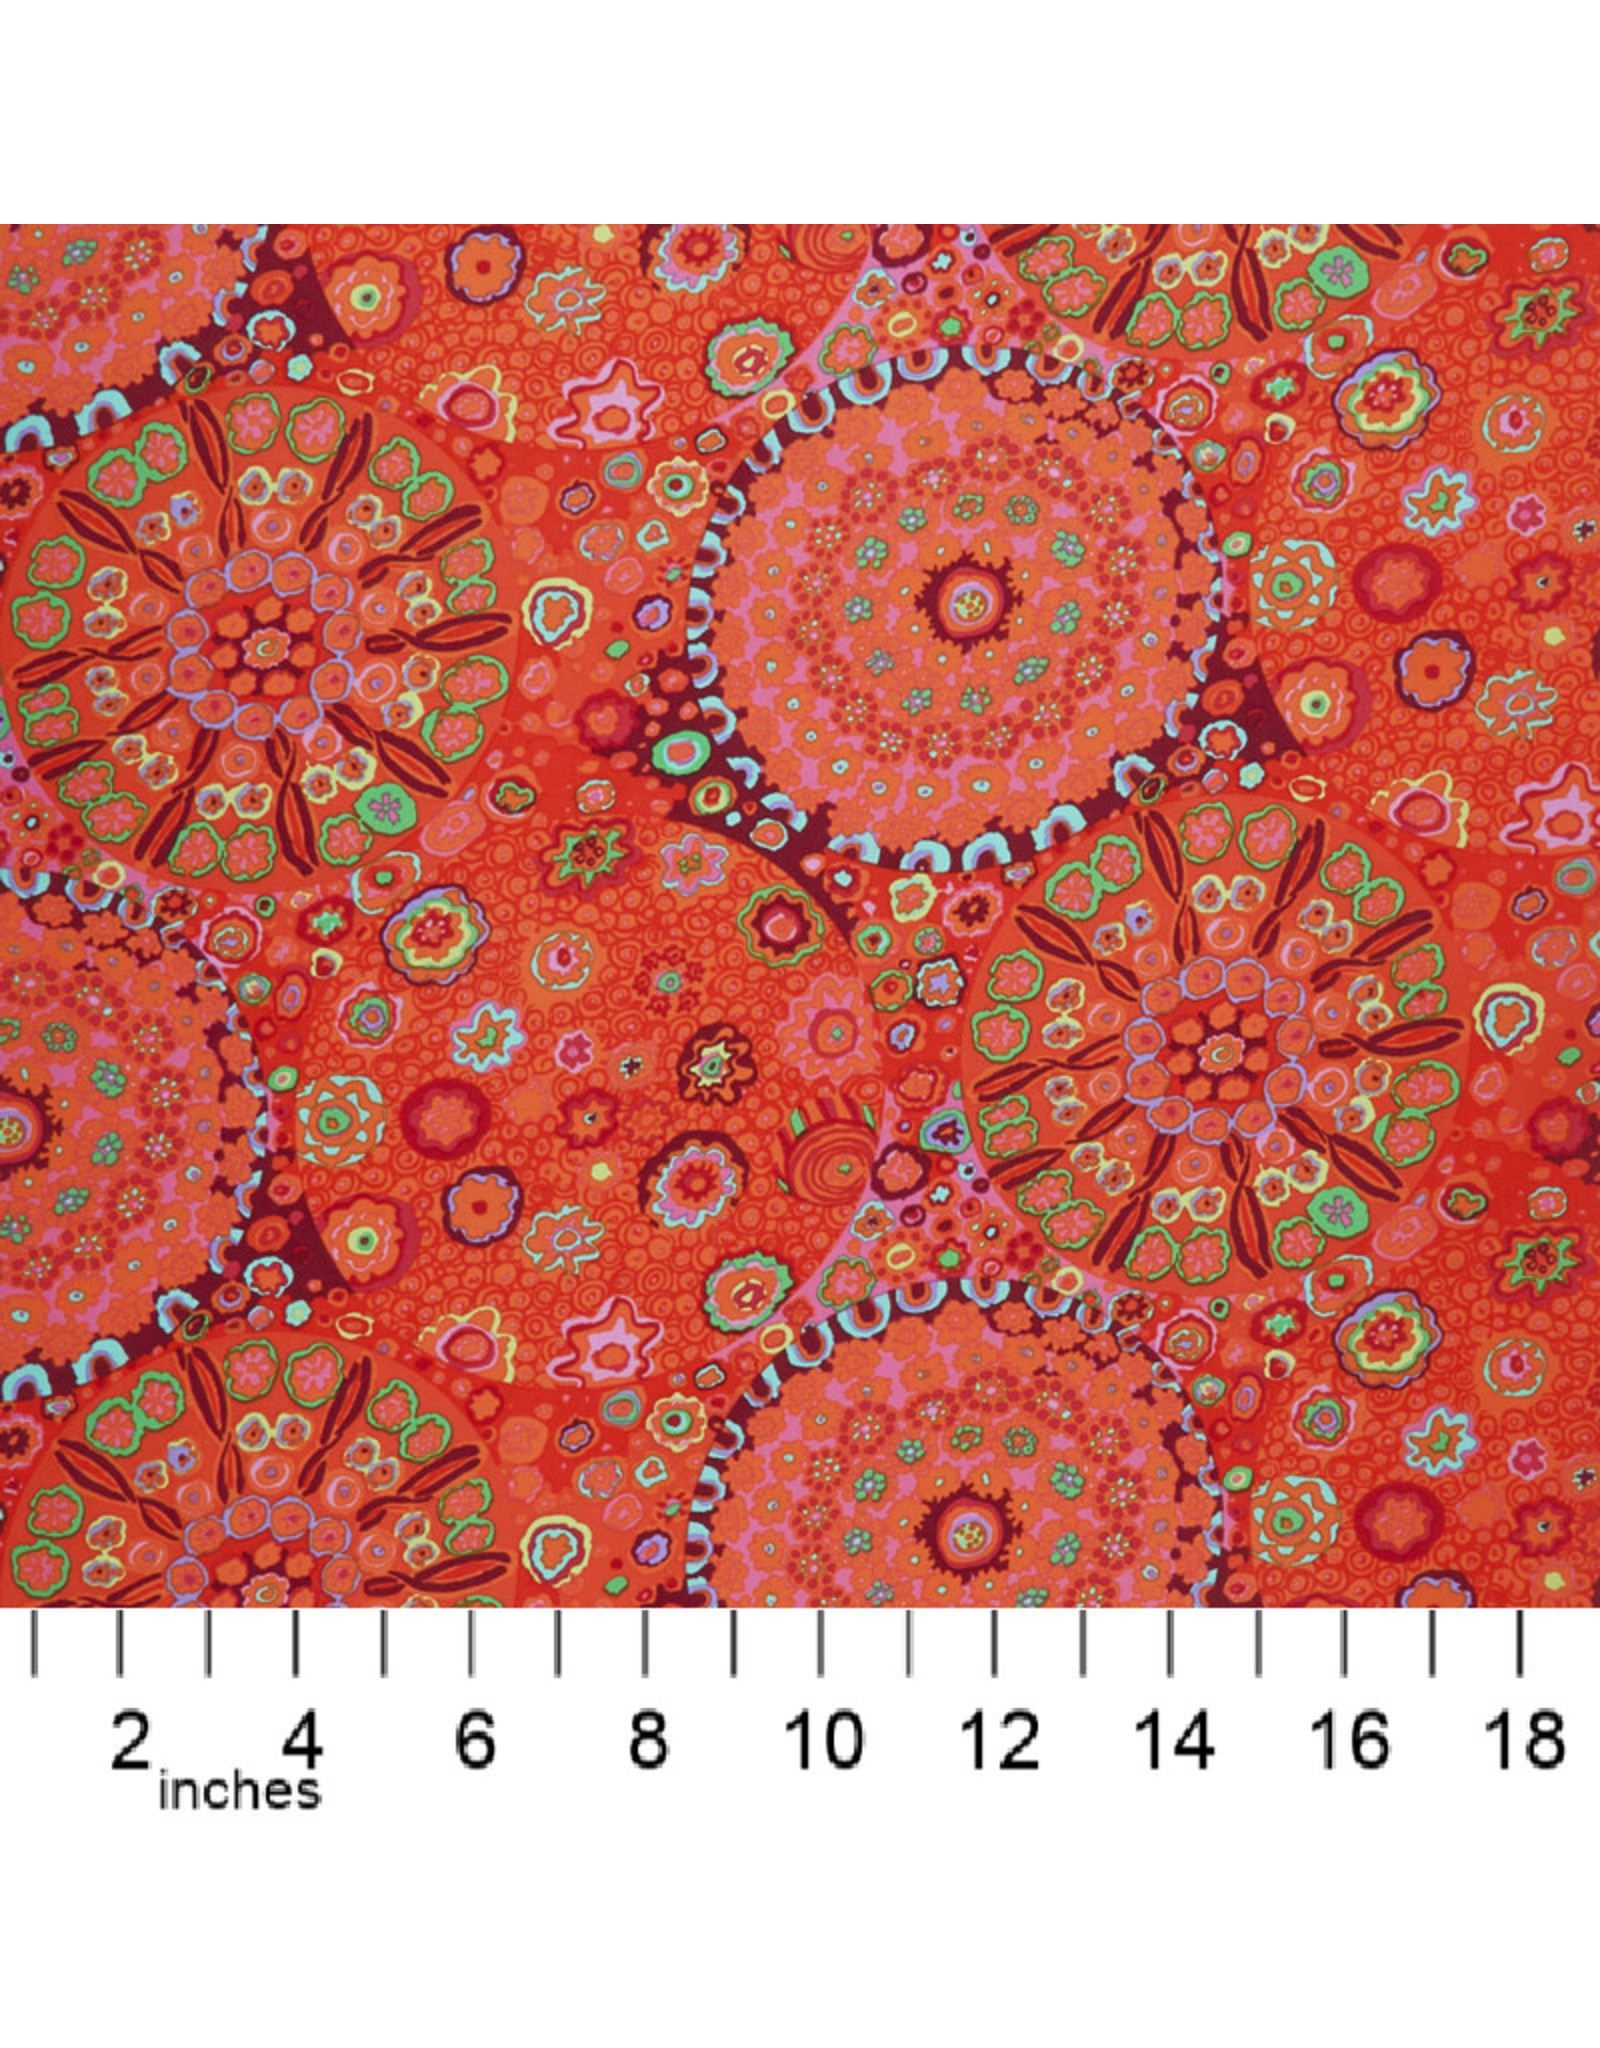 PD's Kaffe Fassett Collection Kaffe Collective Collective, Millefiore in Tomato, Dinner Napkin